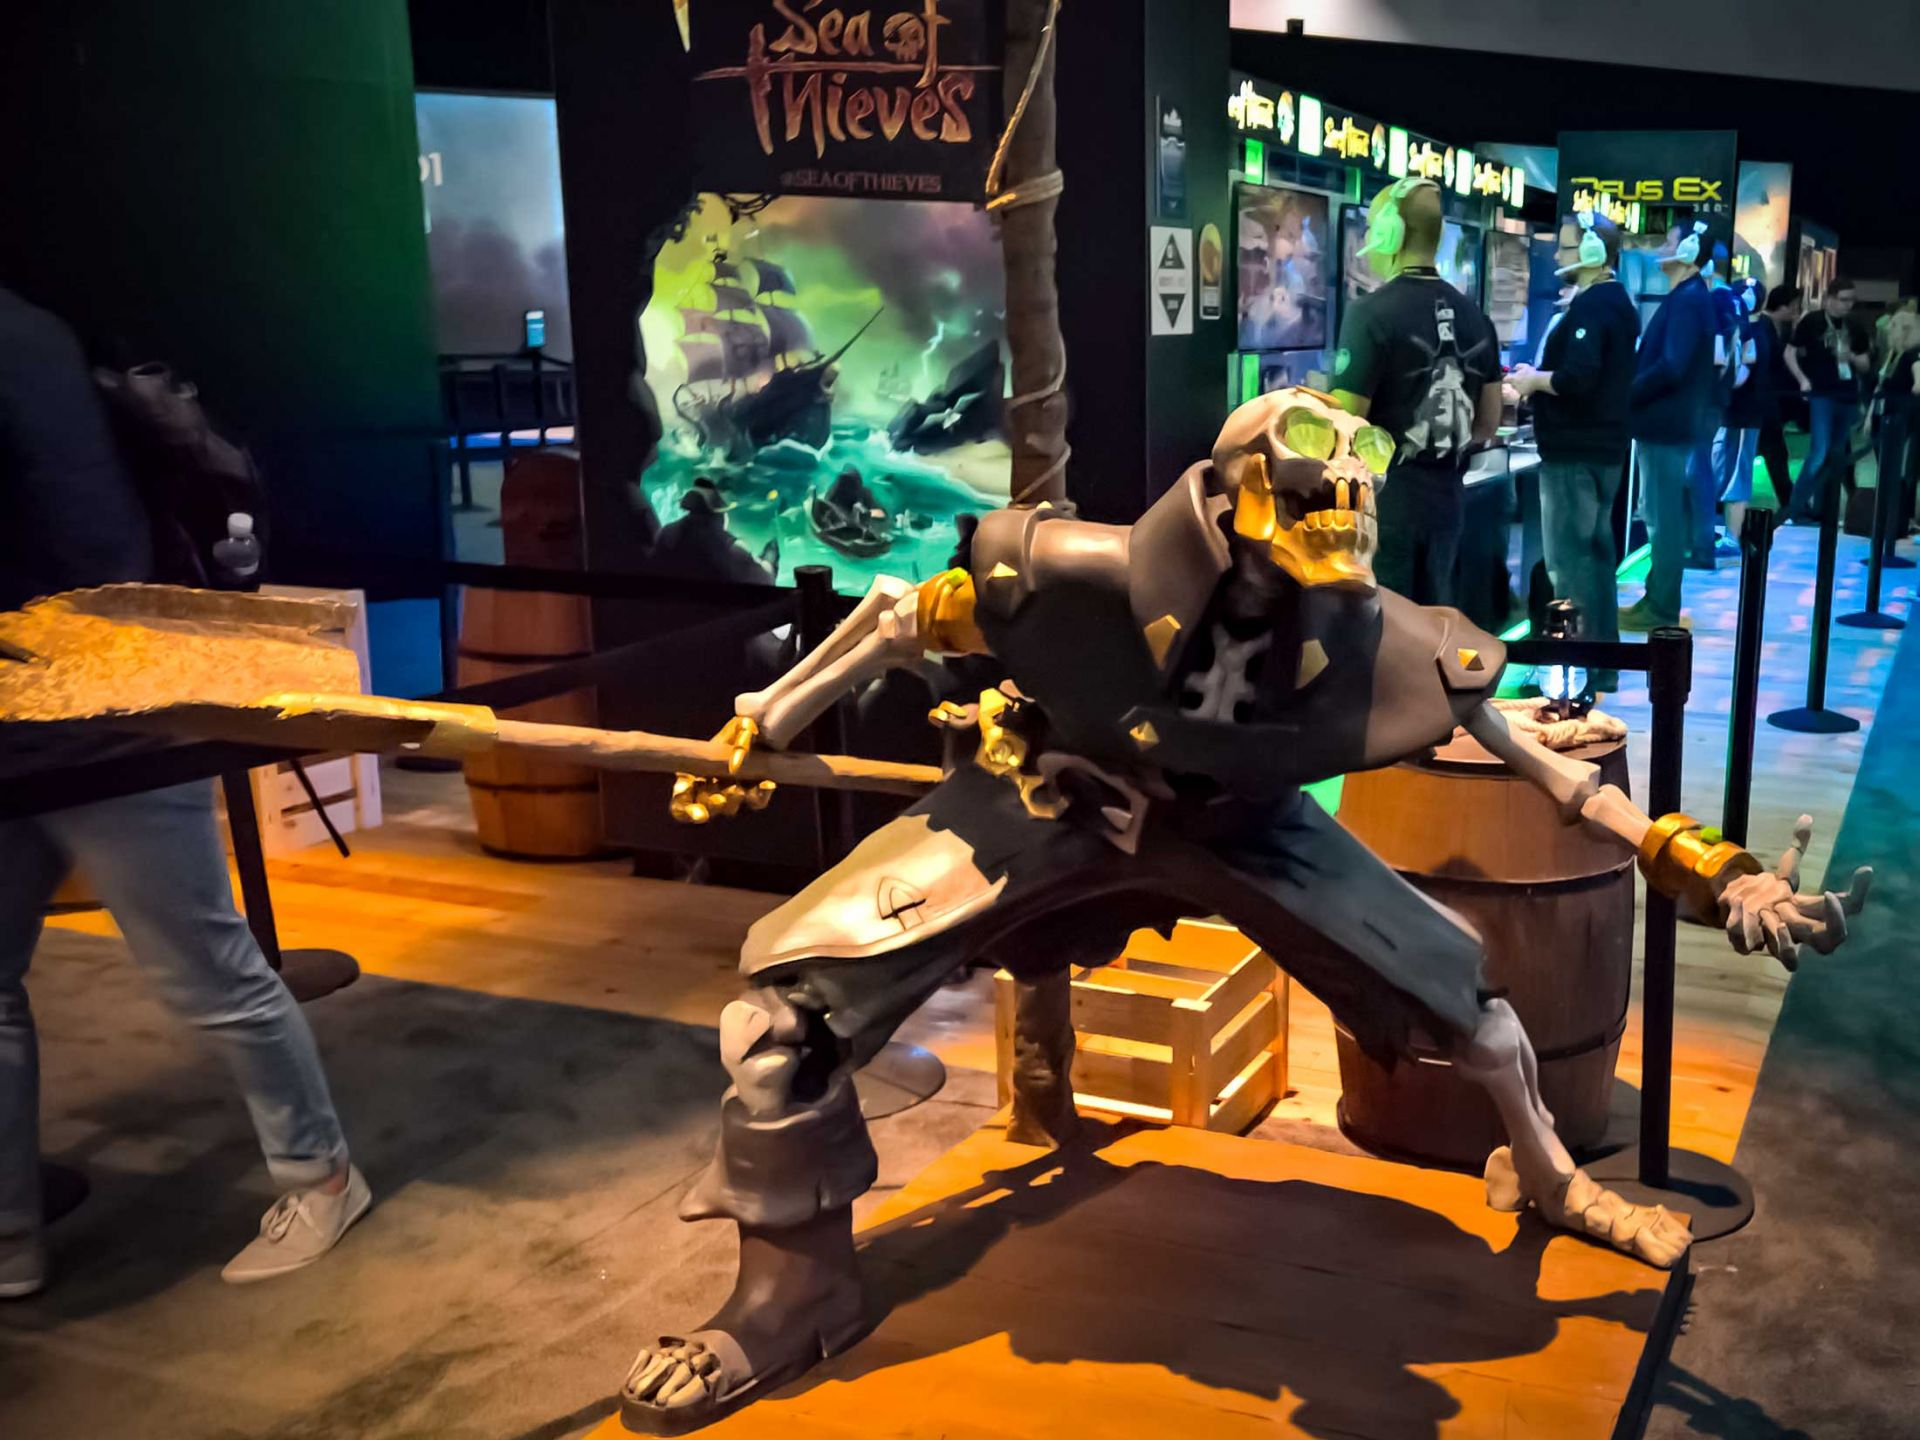 Sea of thieves character at the e3 expo on display with green glowing eyes.